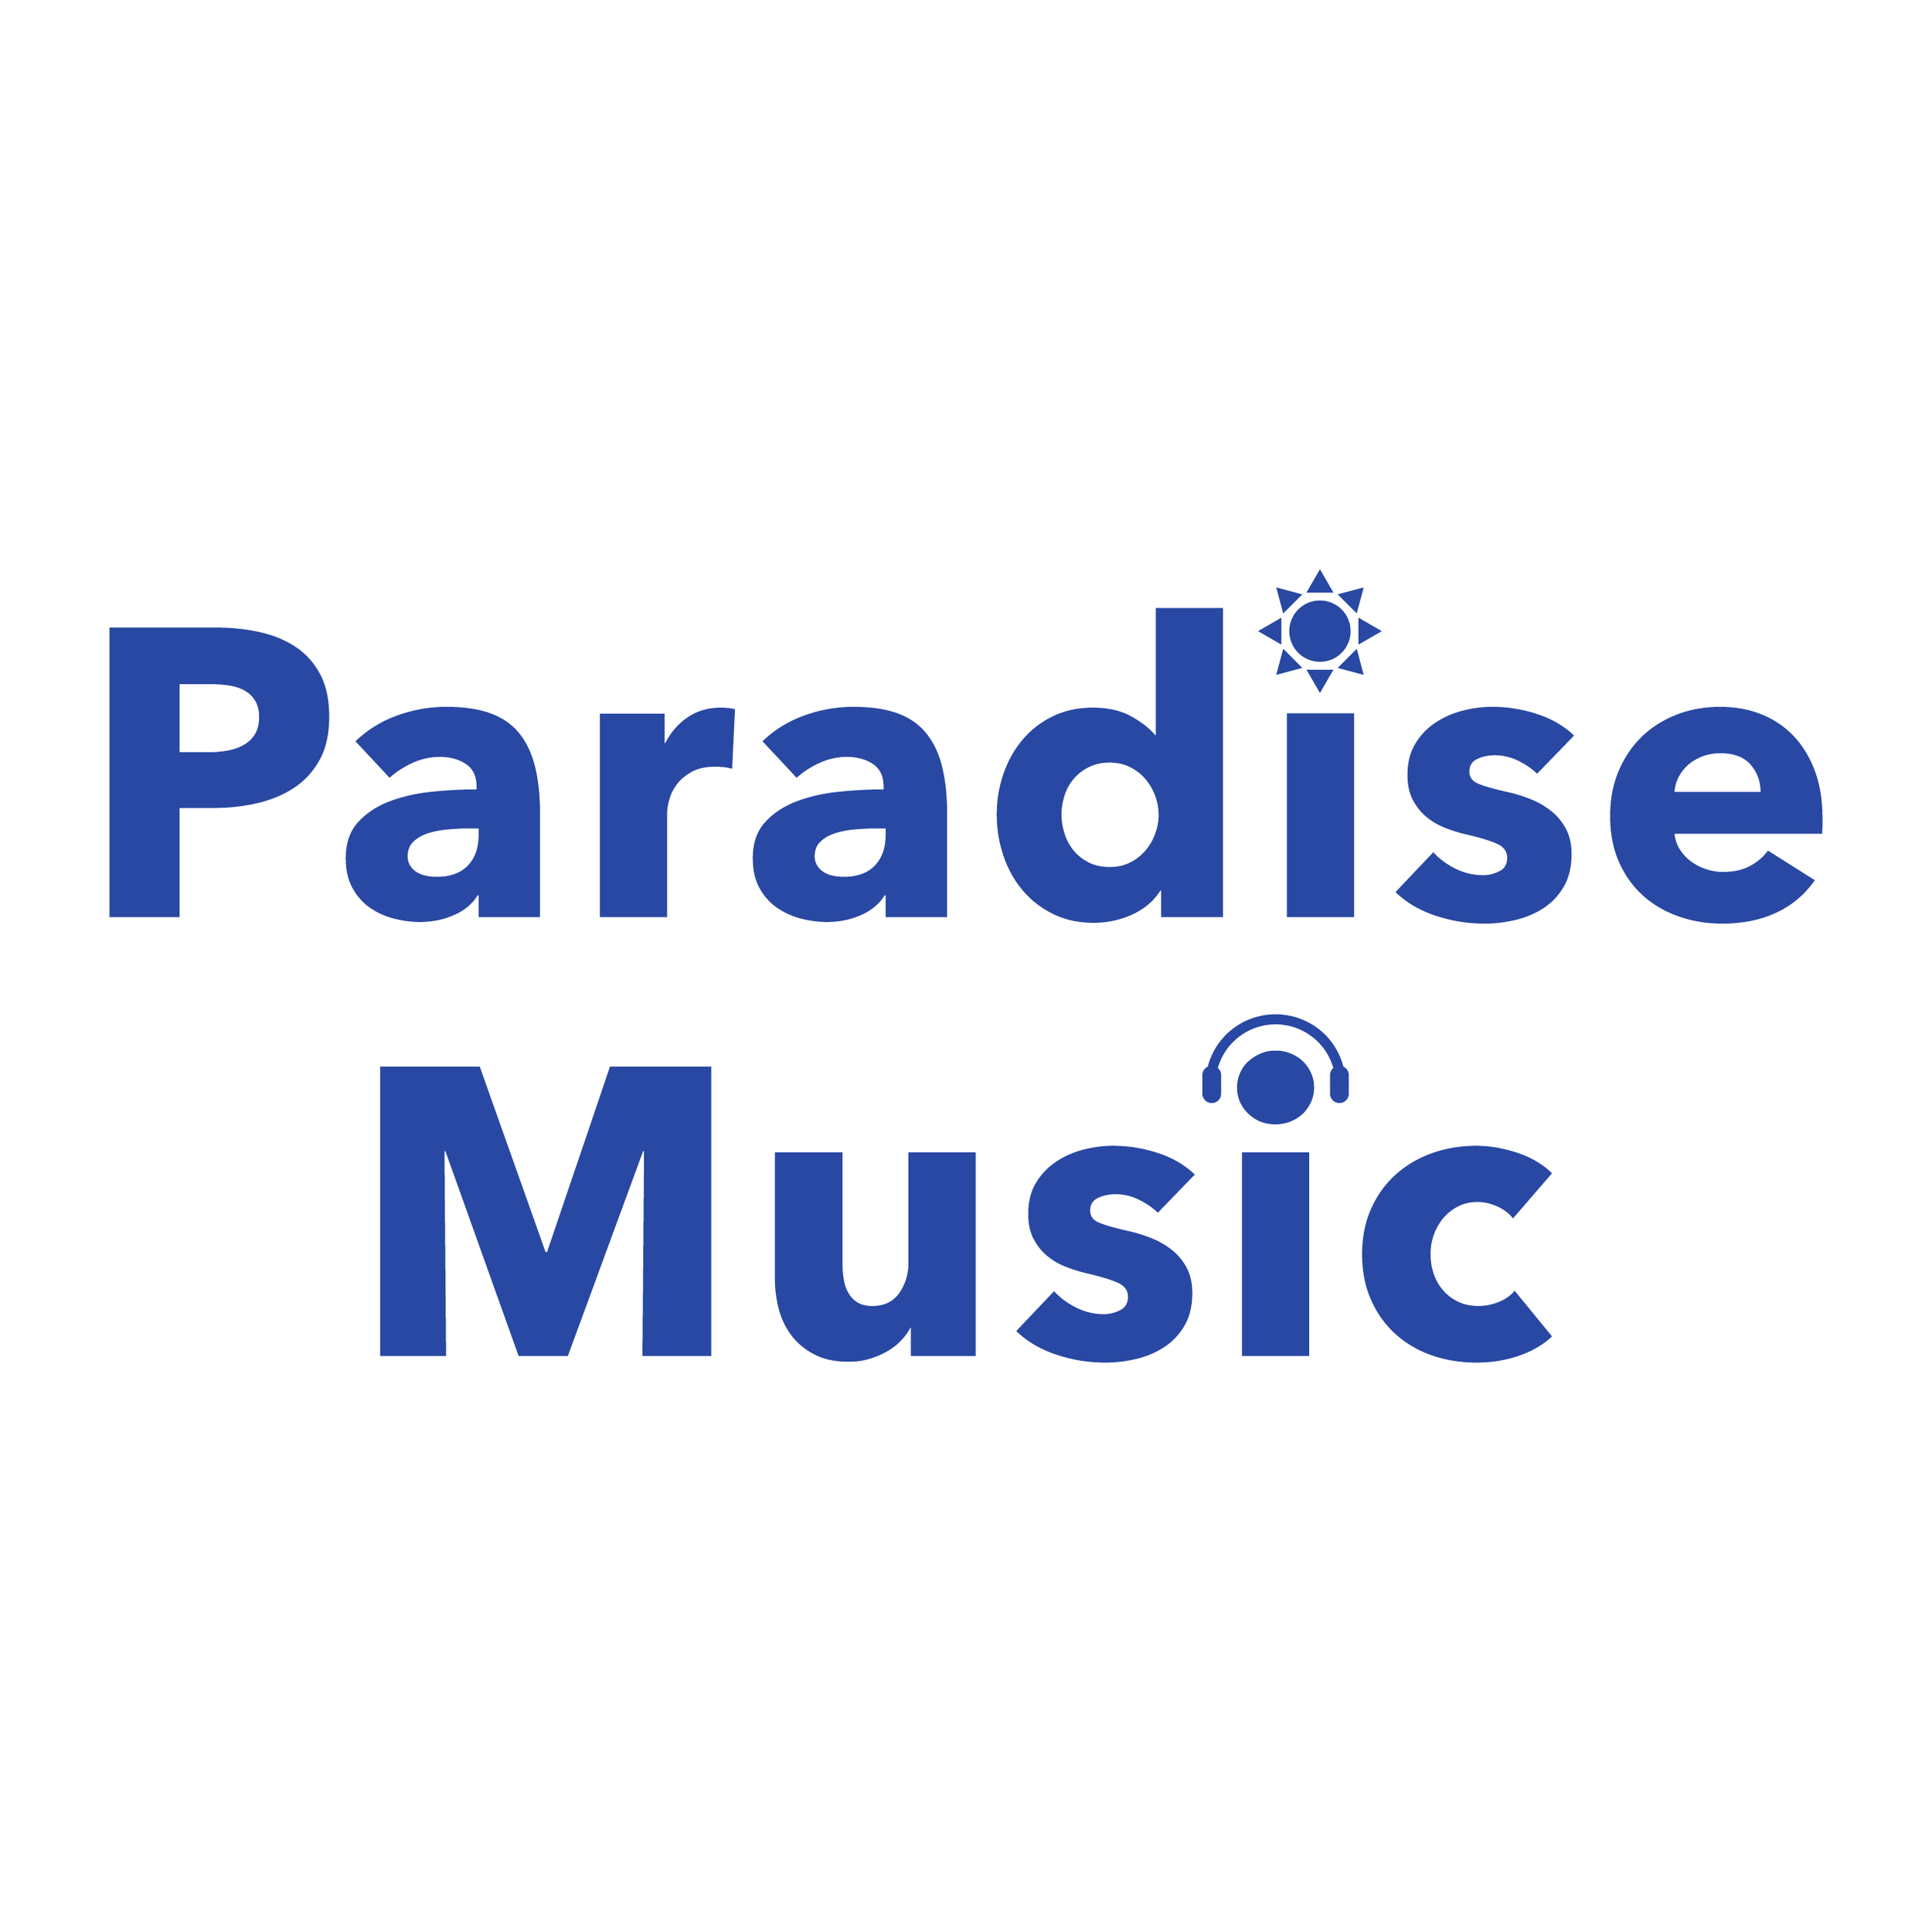 Paradise Music Text-01.png